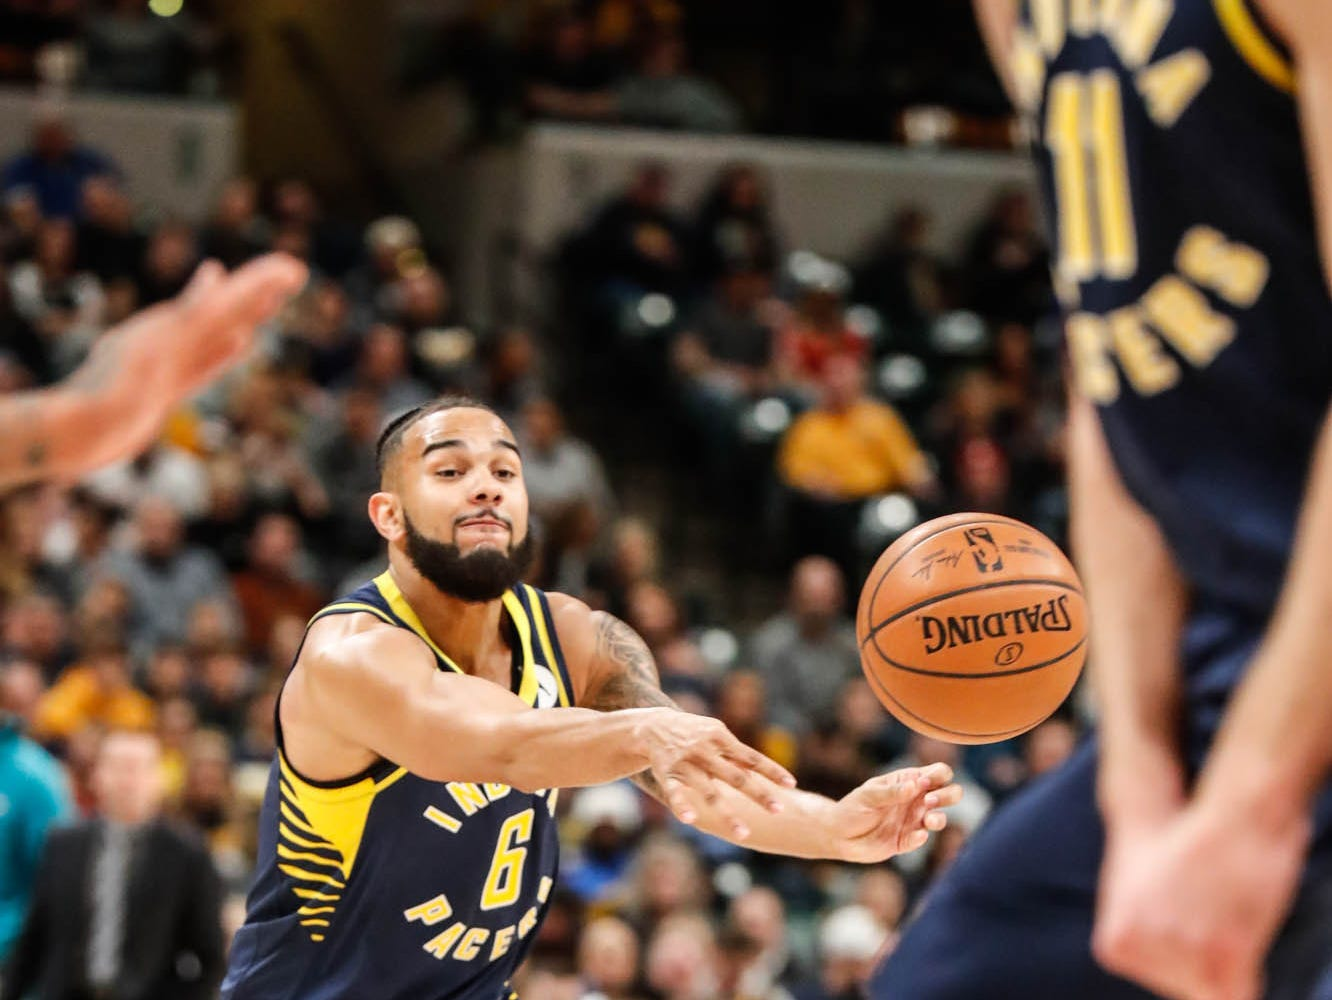 Indiana Pacers guard Cory Joseph (6), passes to a team mate during a game between the Pacers and Hornets at Bankers Life Fieldhouse on Sunday, Jan. 20, 2019.